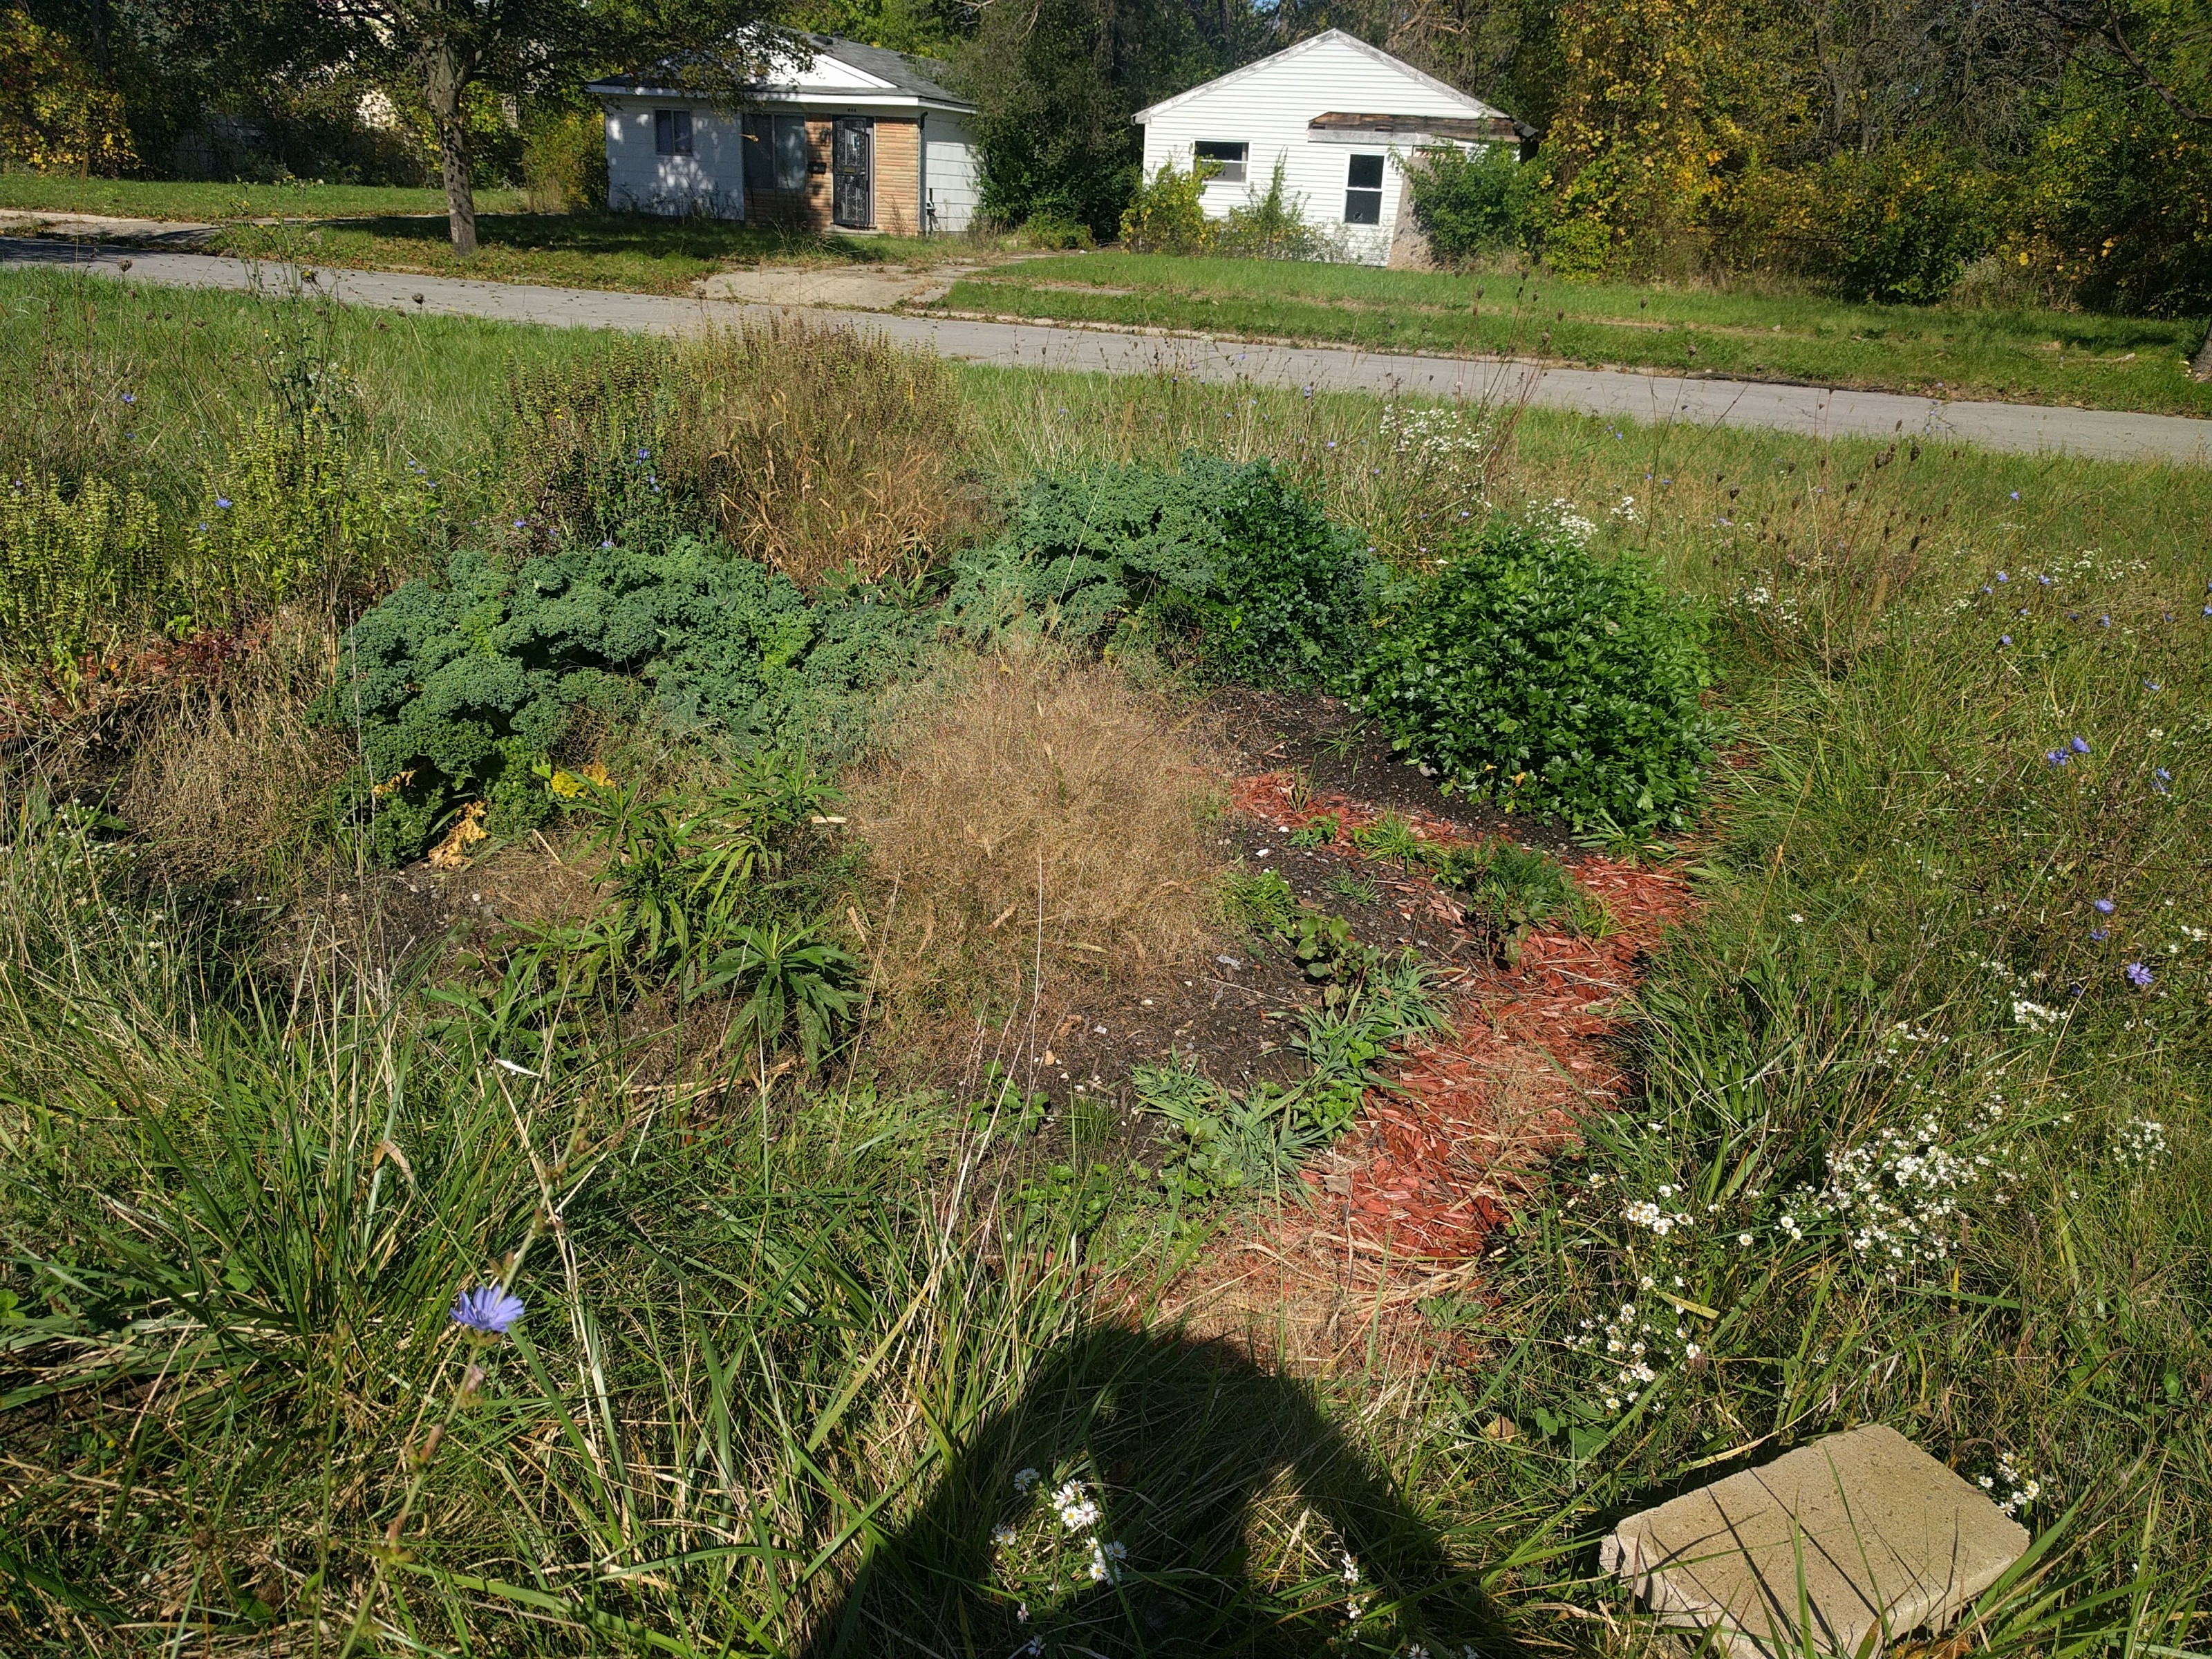 Detroit judge tosses 'gardening while black' case brought by